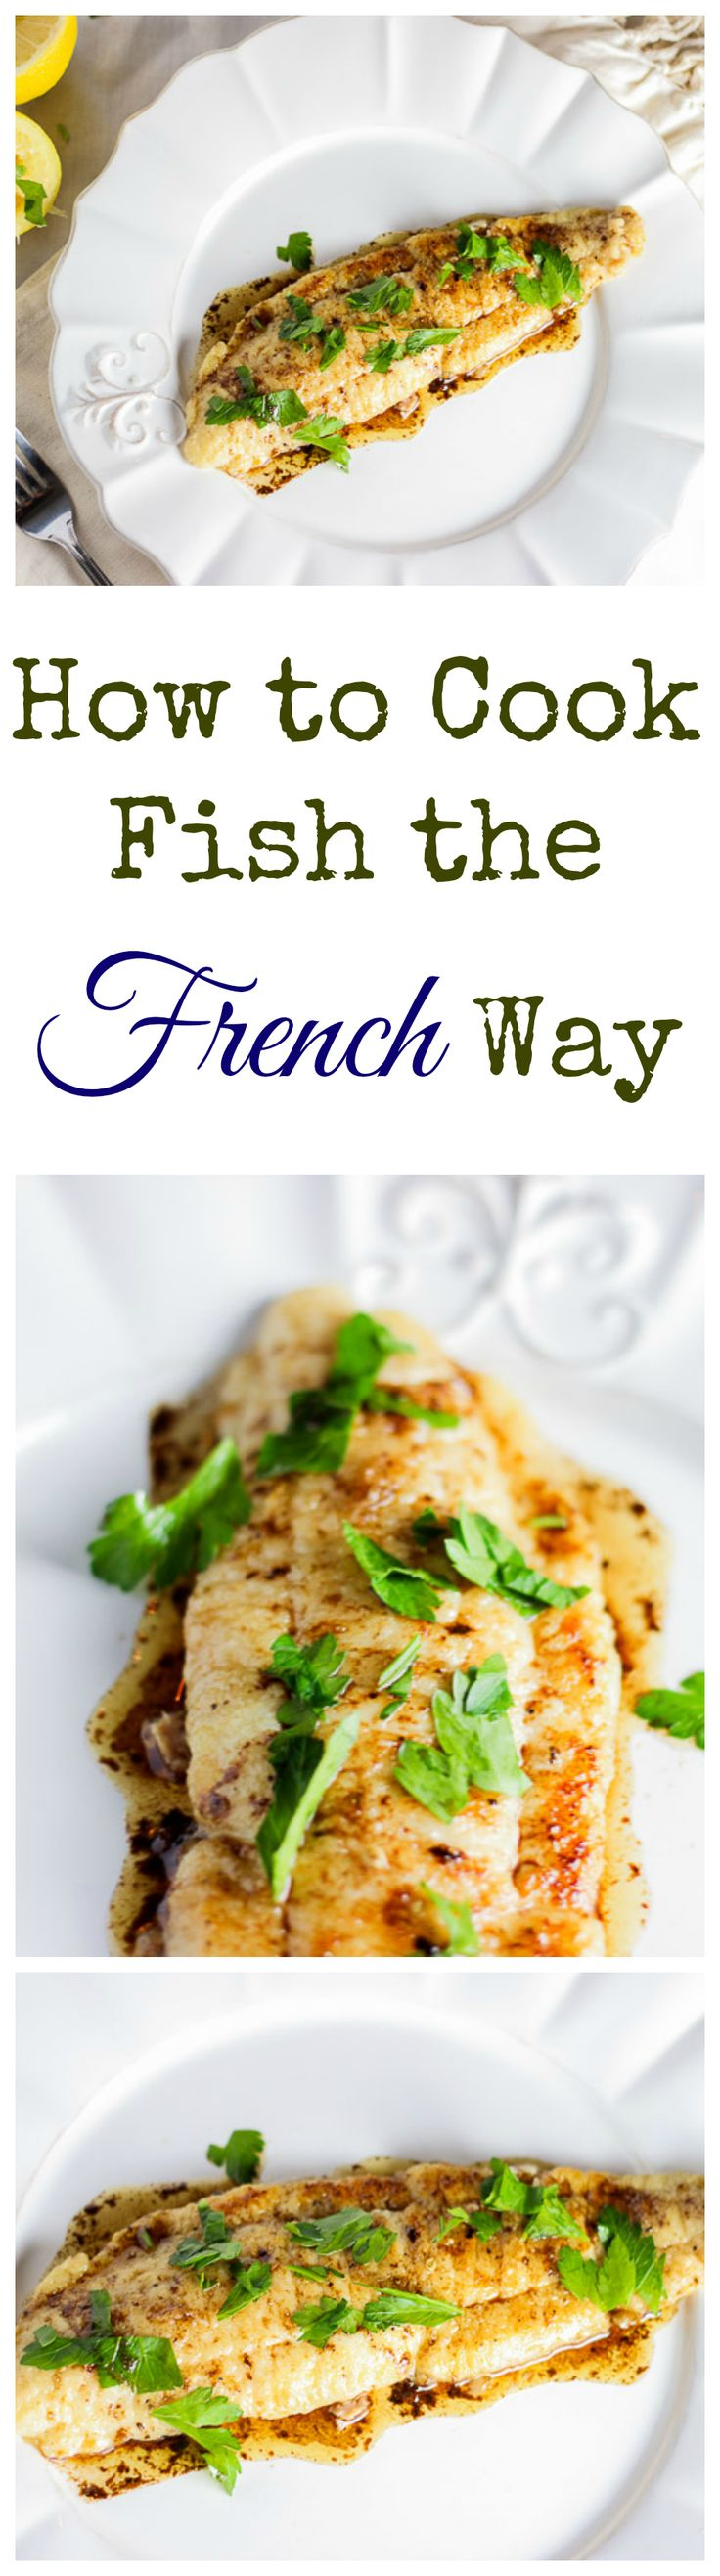 Was yummy served over arugula! I used flounder cut up in small pieces. -MP This fish is pan-seared and served with a butter, lemon, and parsley sauce. It's a very quick and tasty French classic.